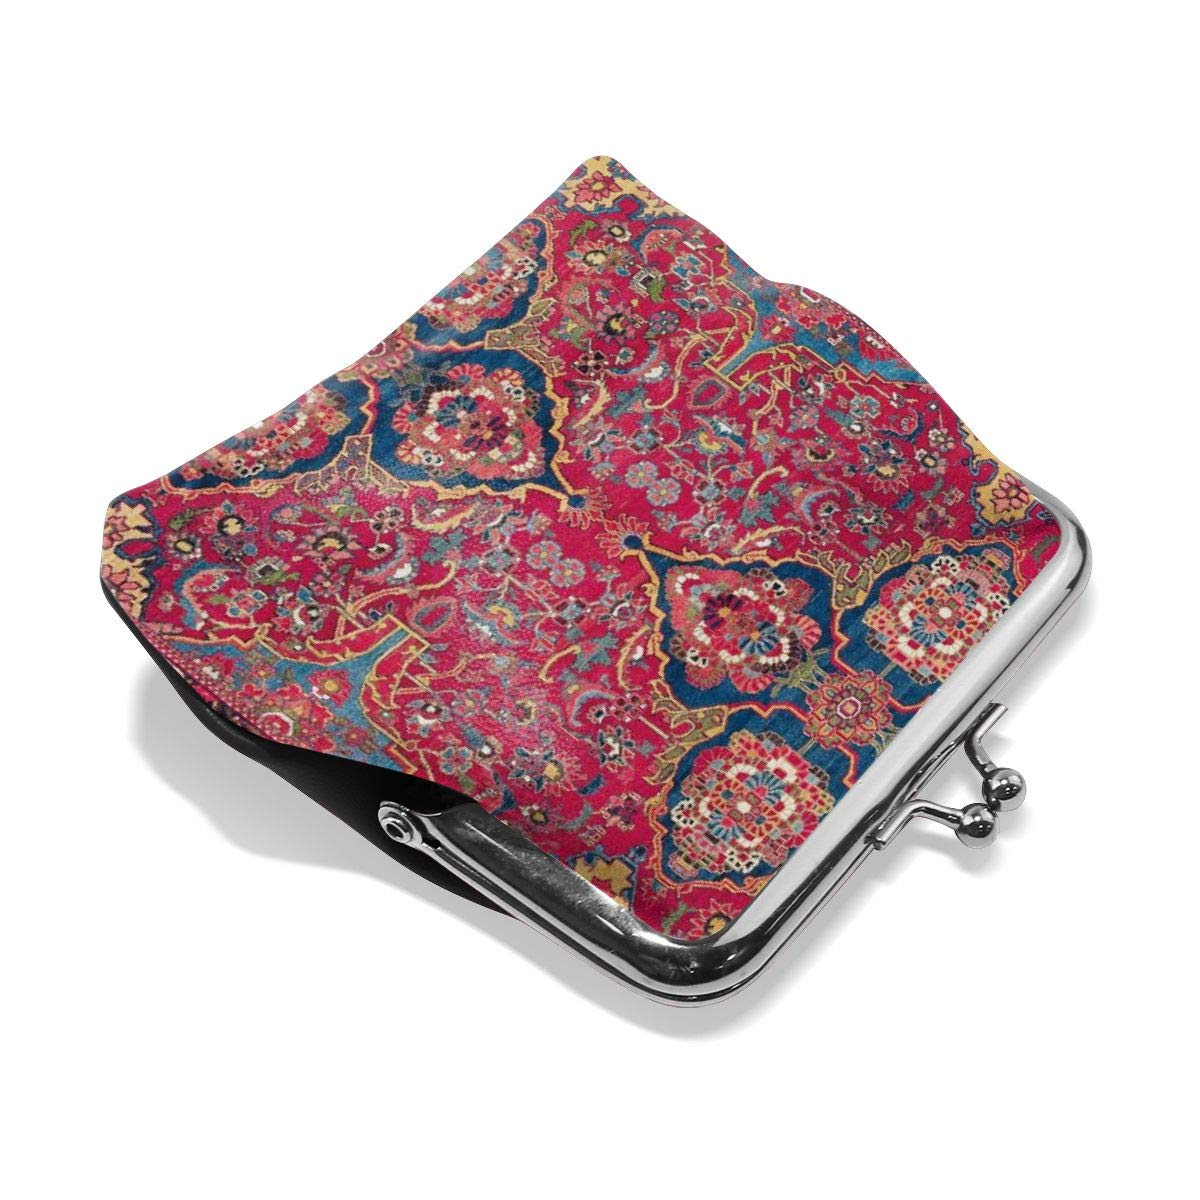 f126616e7580 Bakhtiari West Persian Rug Cute Buckle Leather Little Coin Purse ...